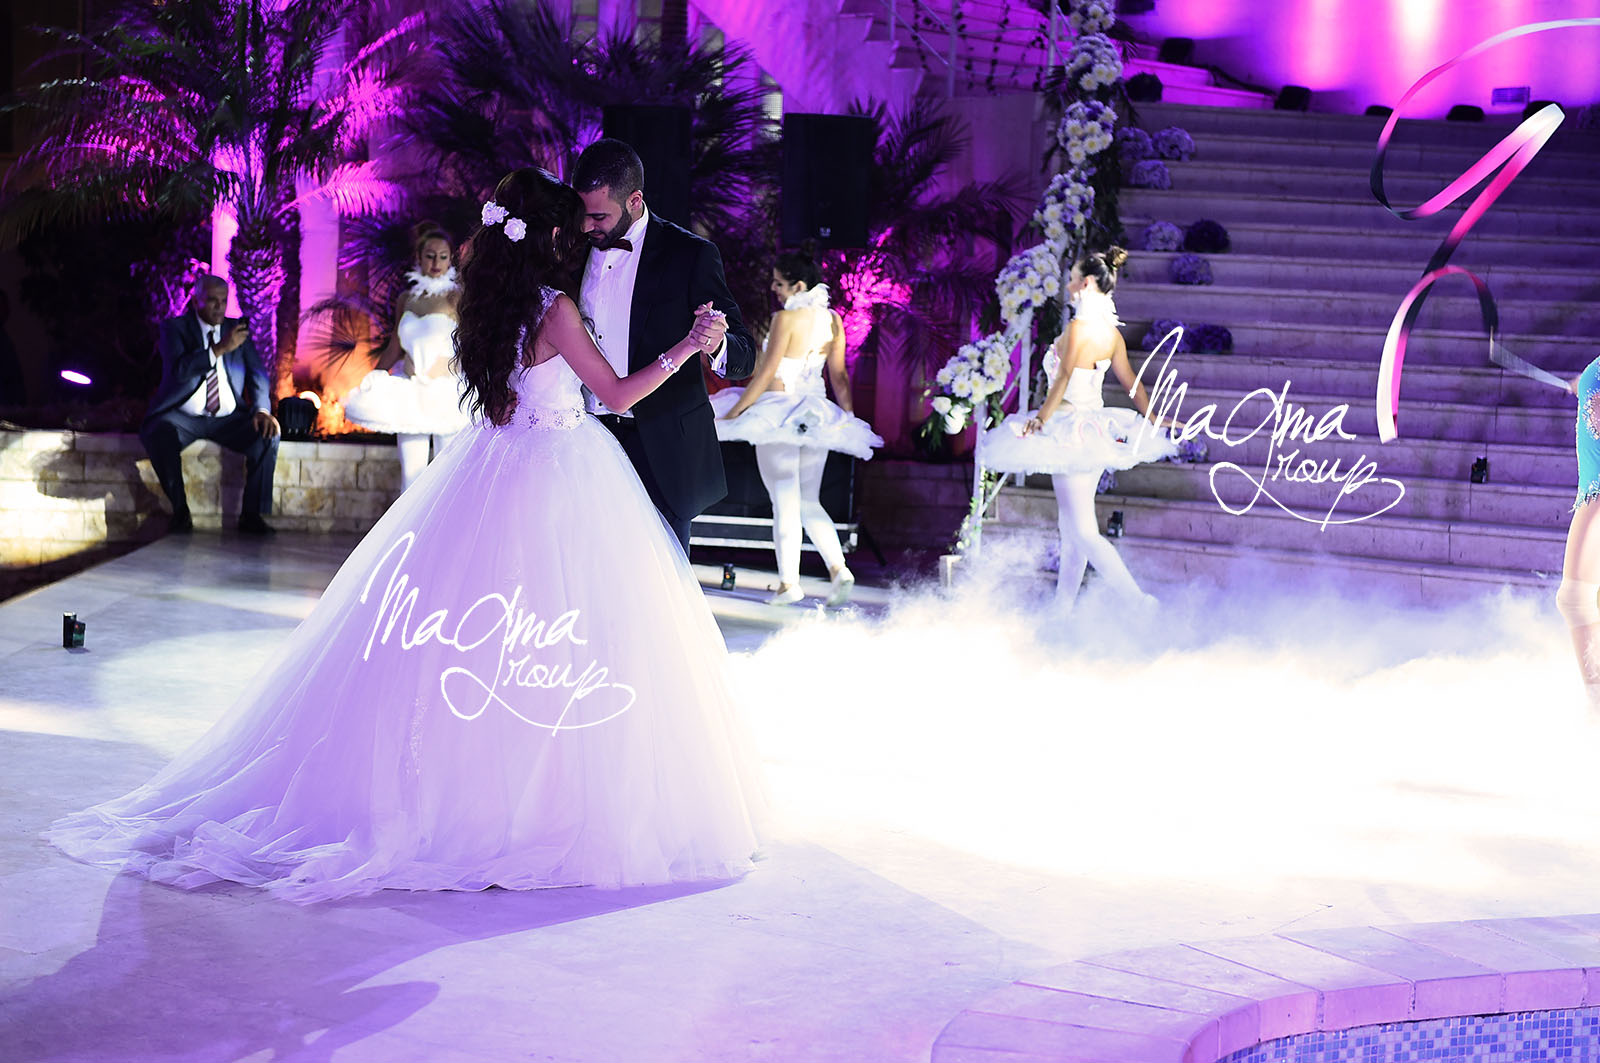 magma-group-clasical-wedding-new-first-dance